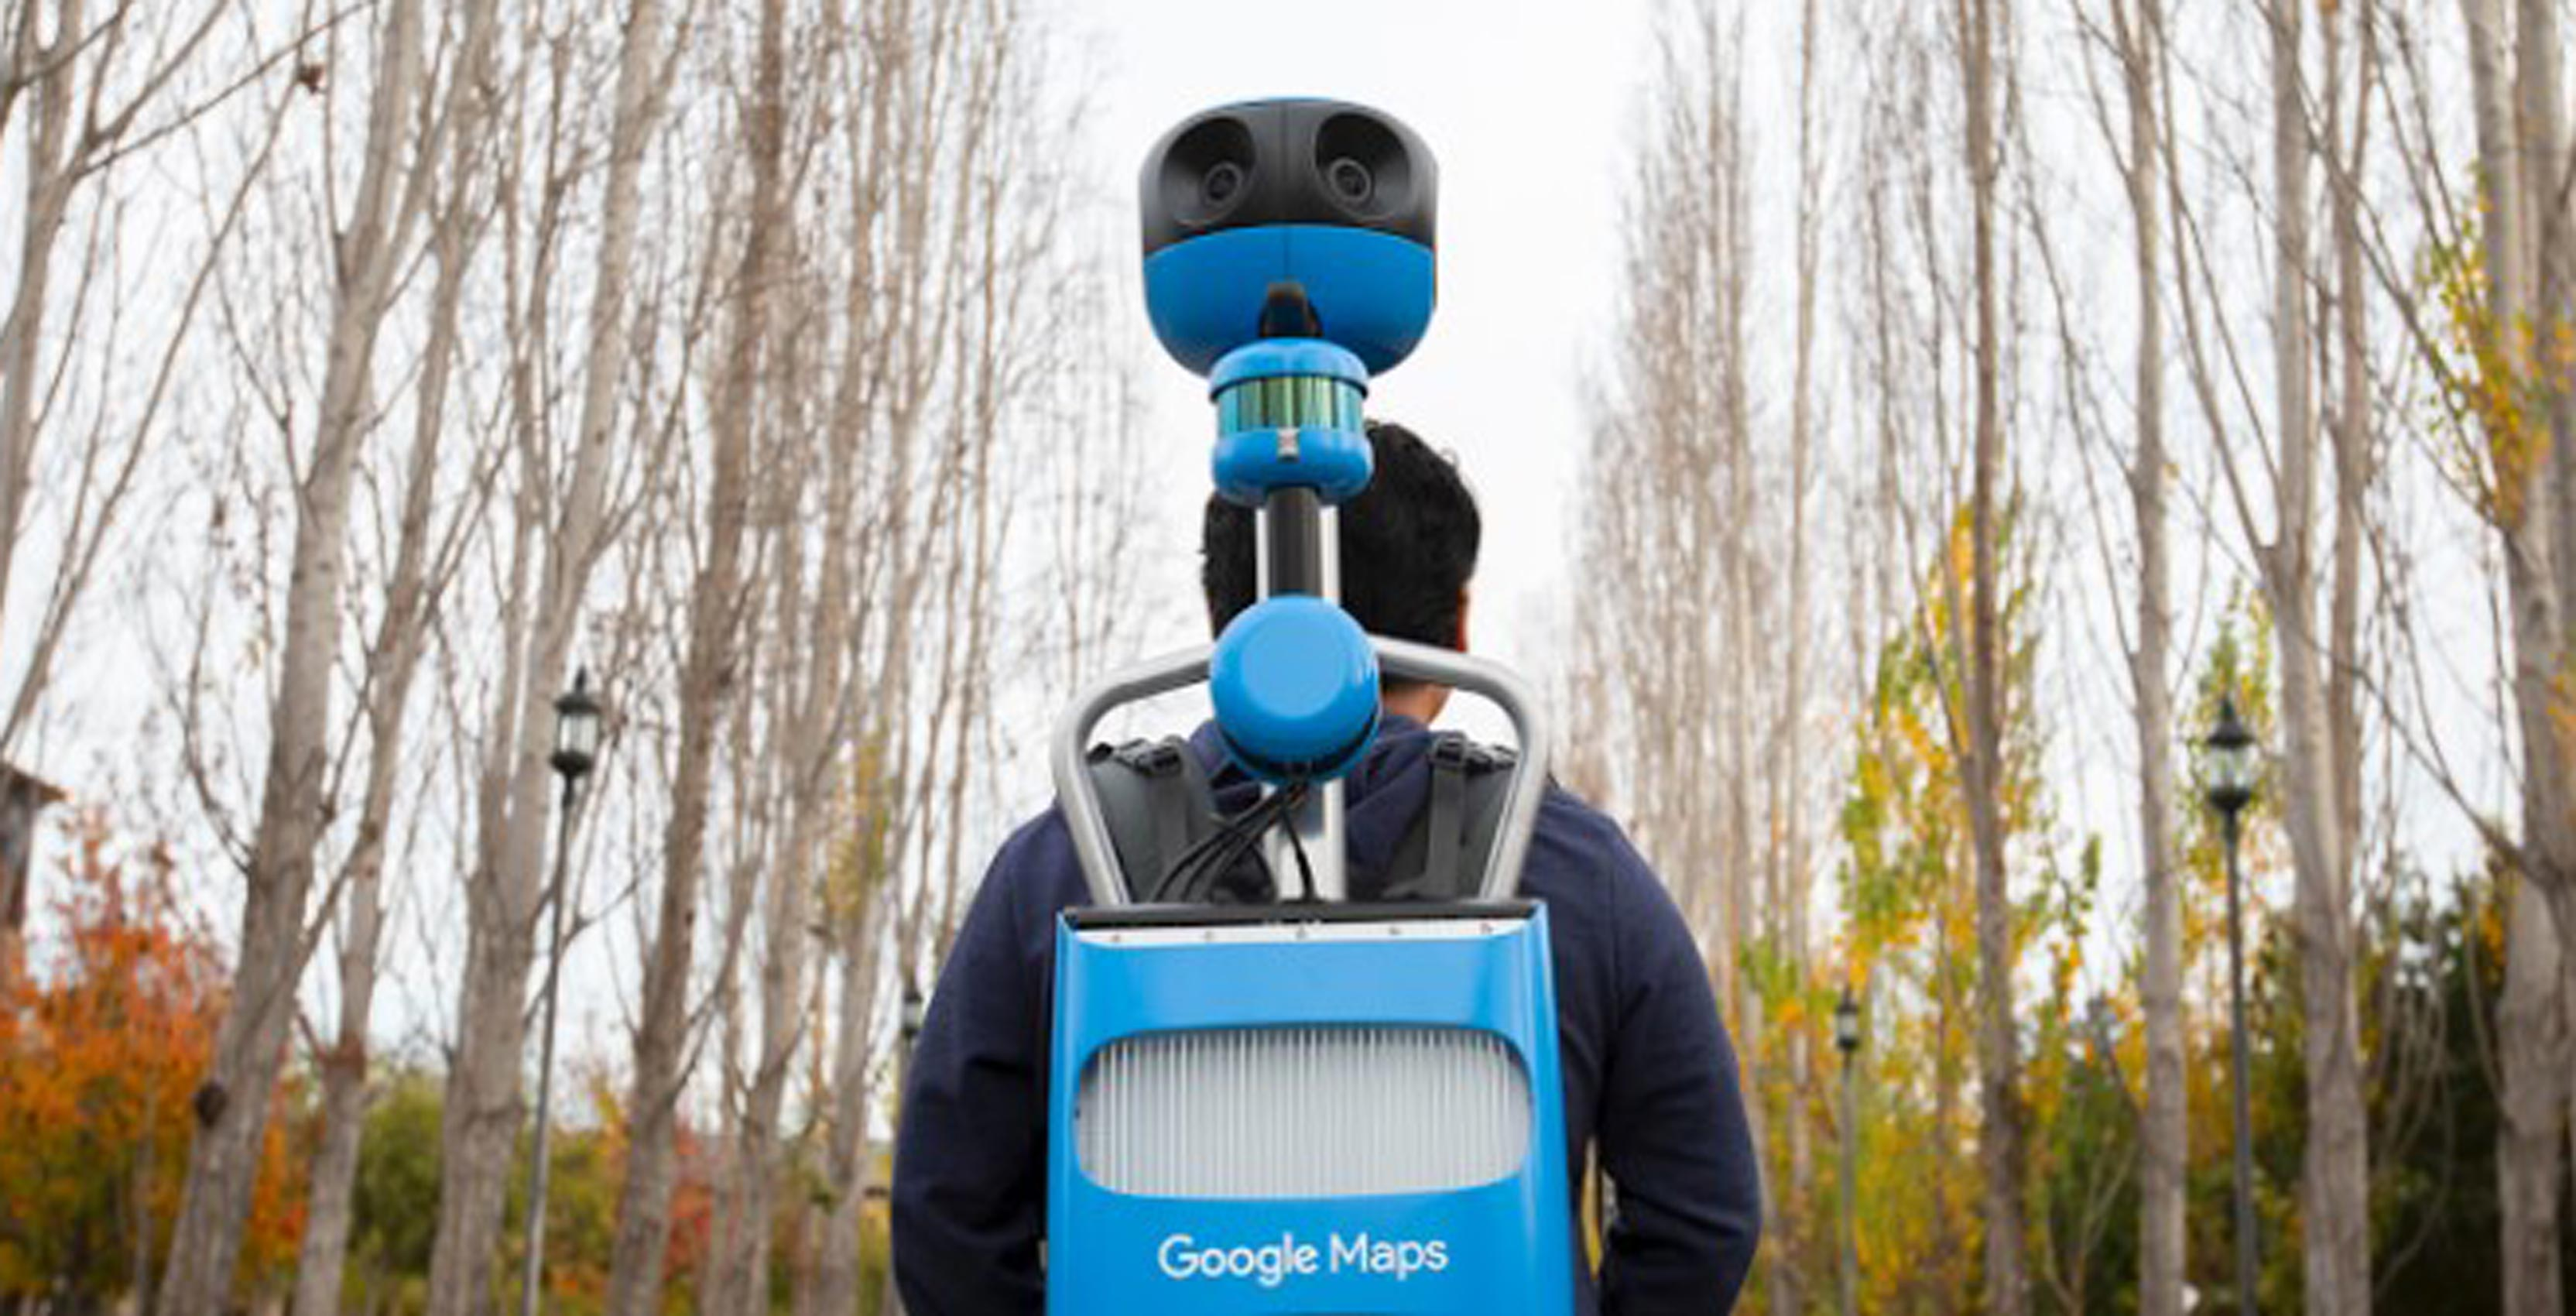 A look at the Google's new Street View Trekker